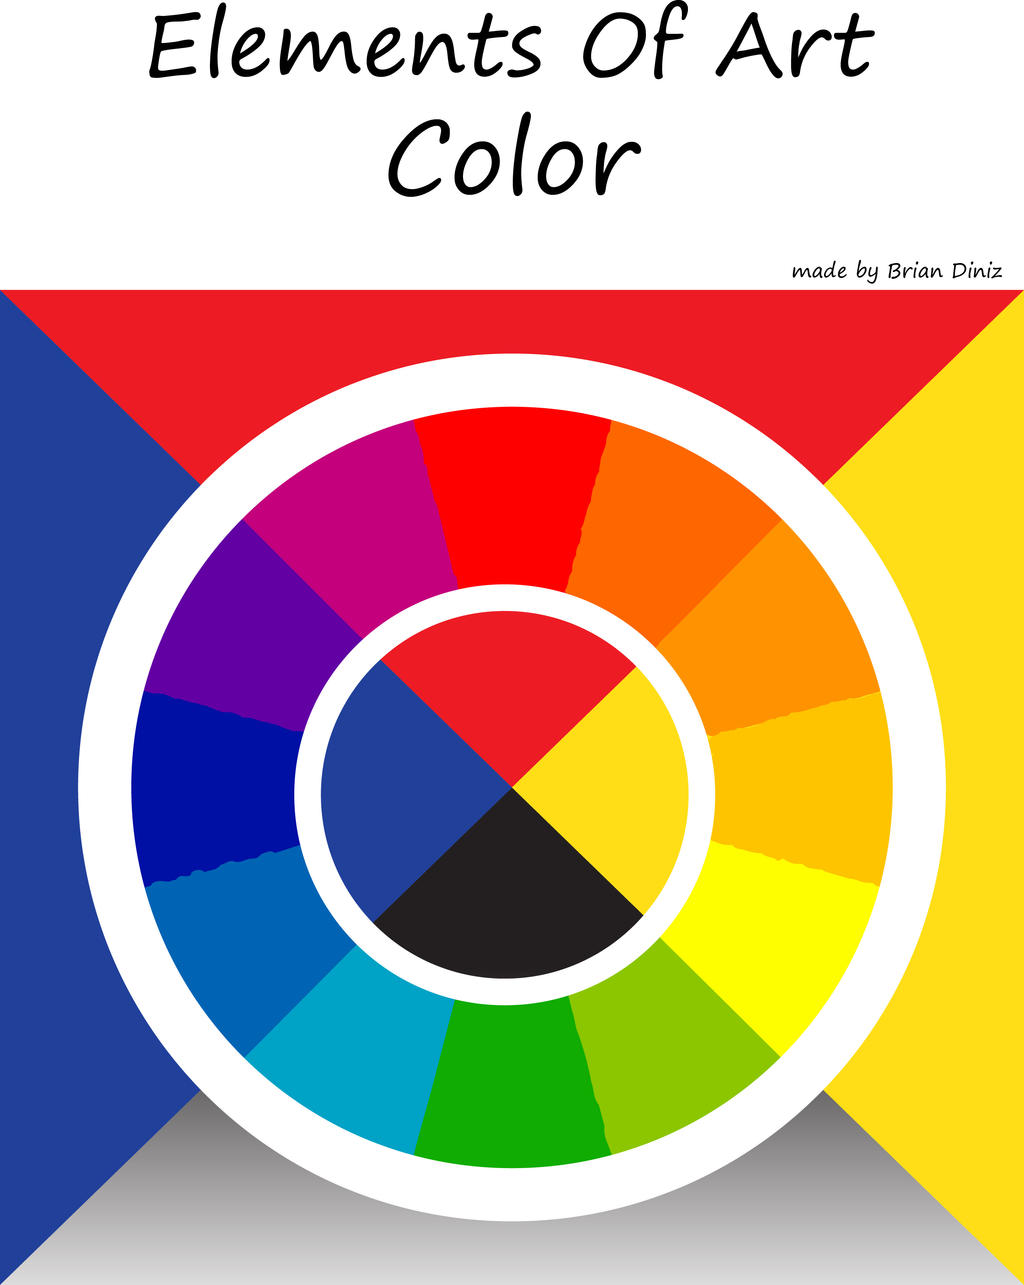 What Are The 6 Elements Of Art : Elements of art color by briandnz on deviantart